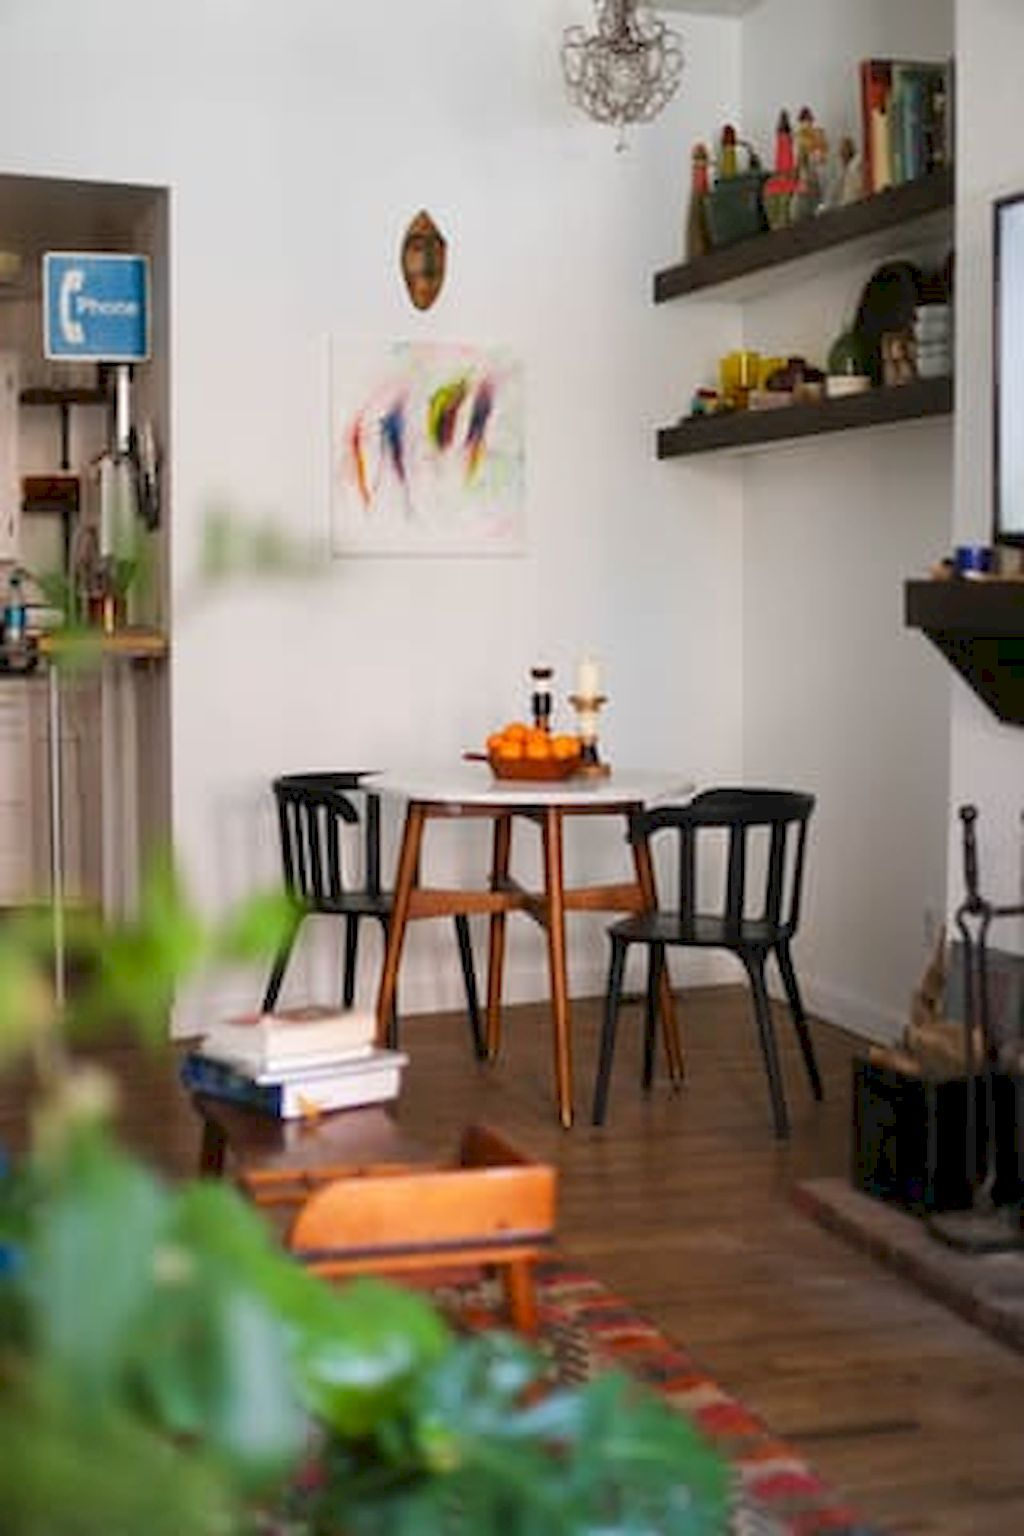 40 boho chic first apartment decor ideas contemporary dining furniture apartment decor on boho chic dining room kitchen dining tables id=92623